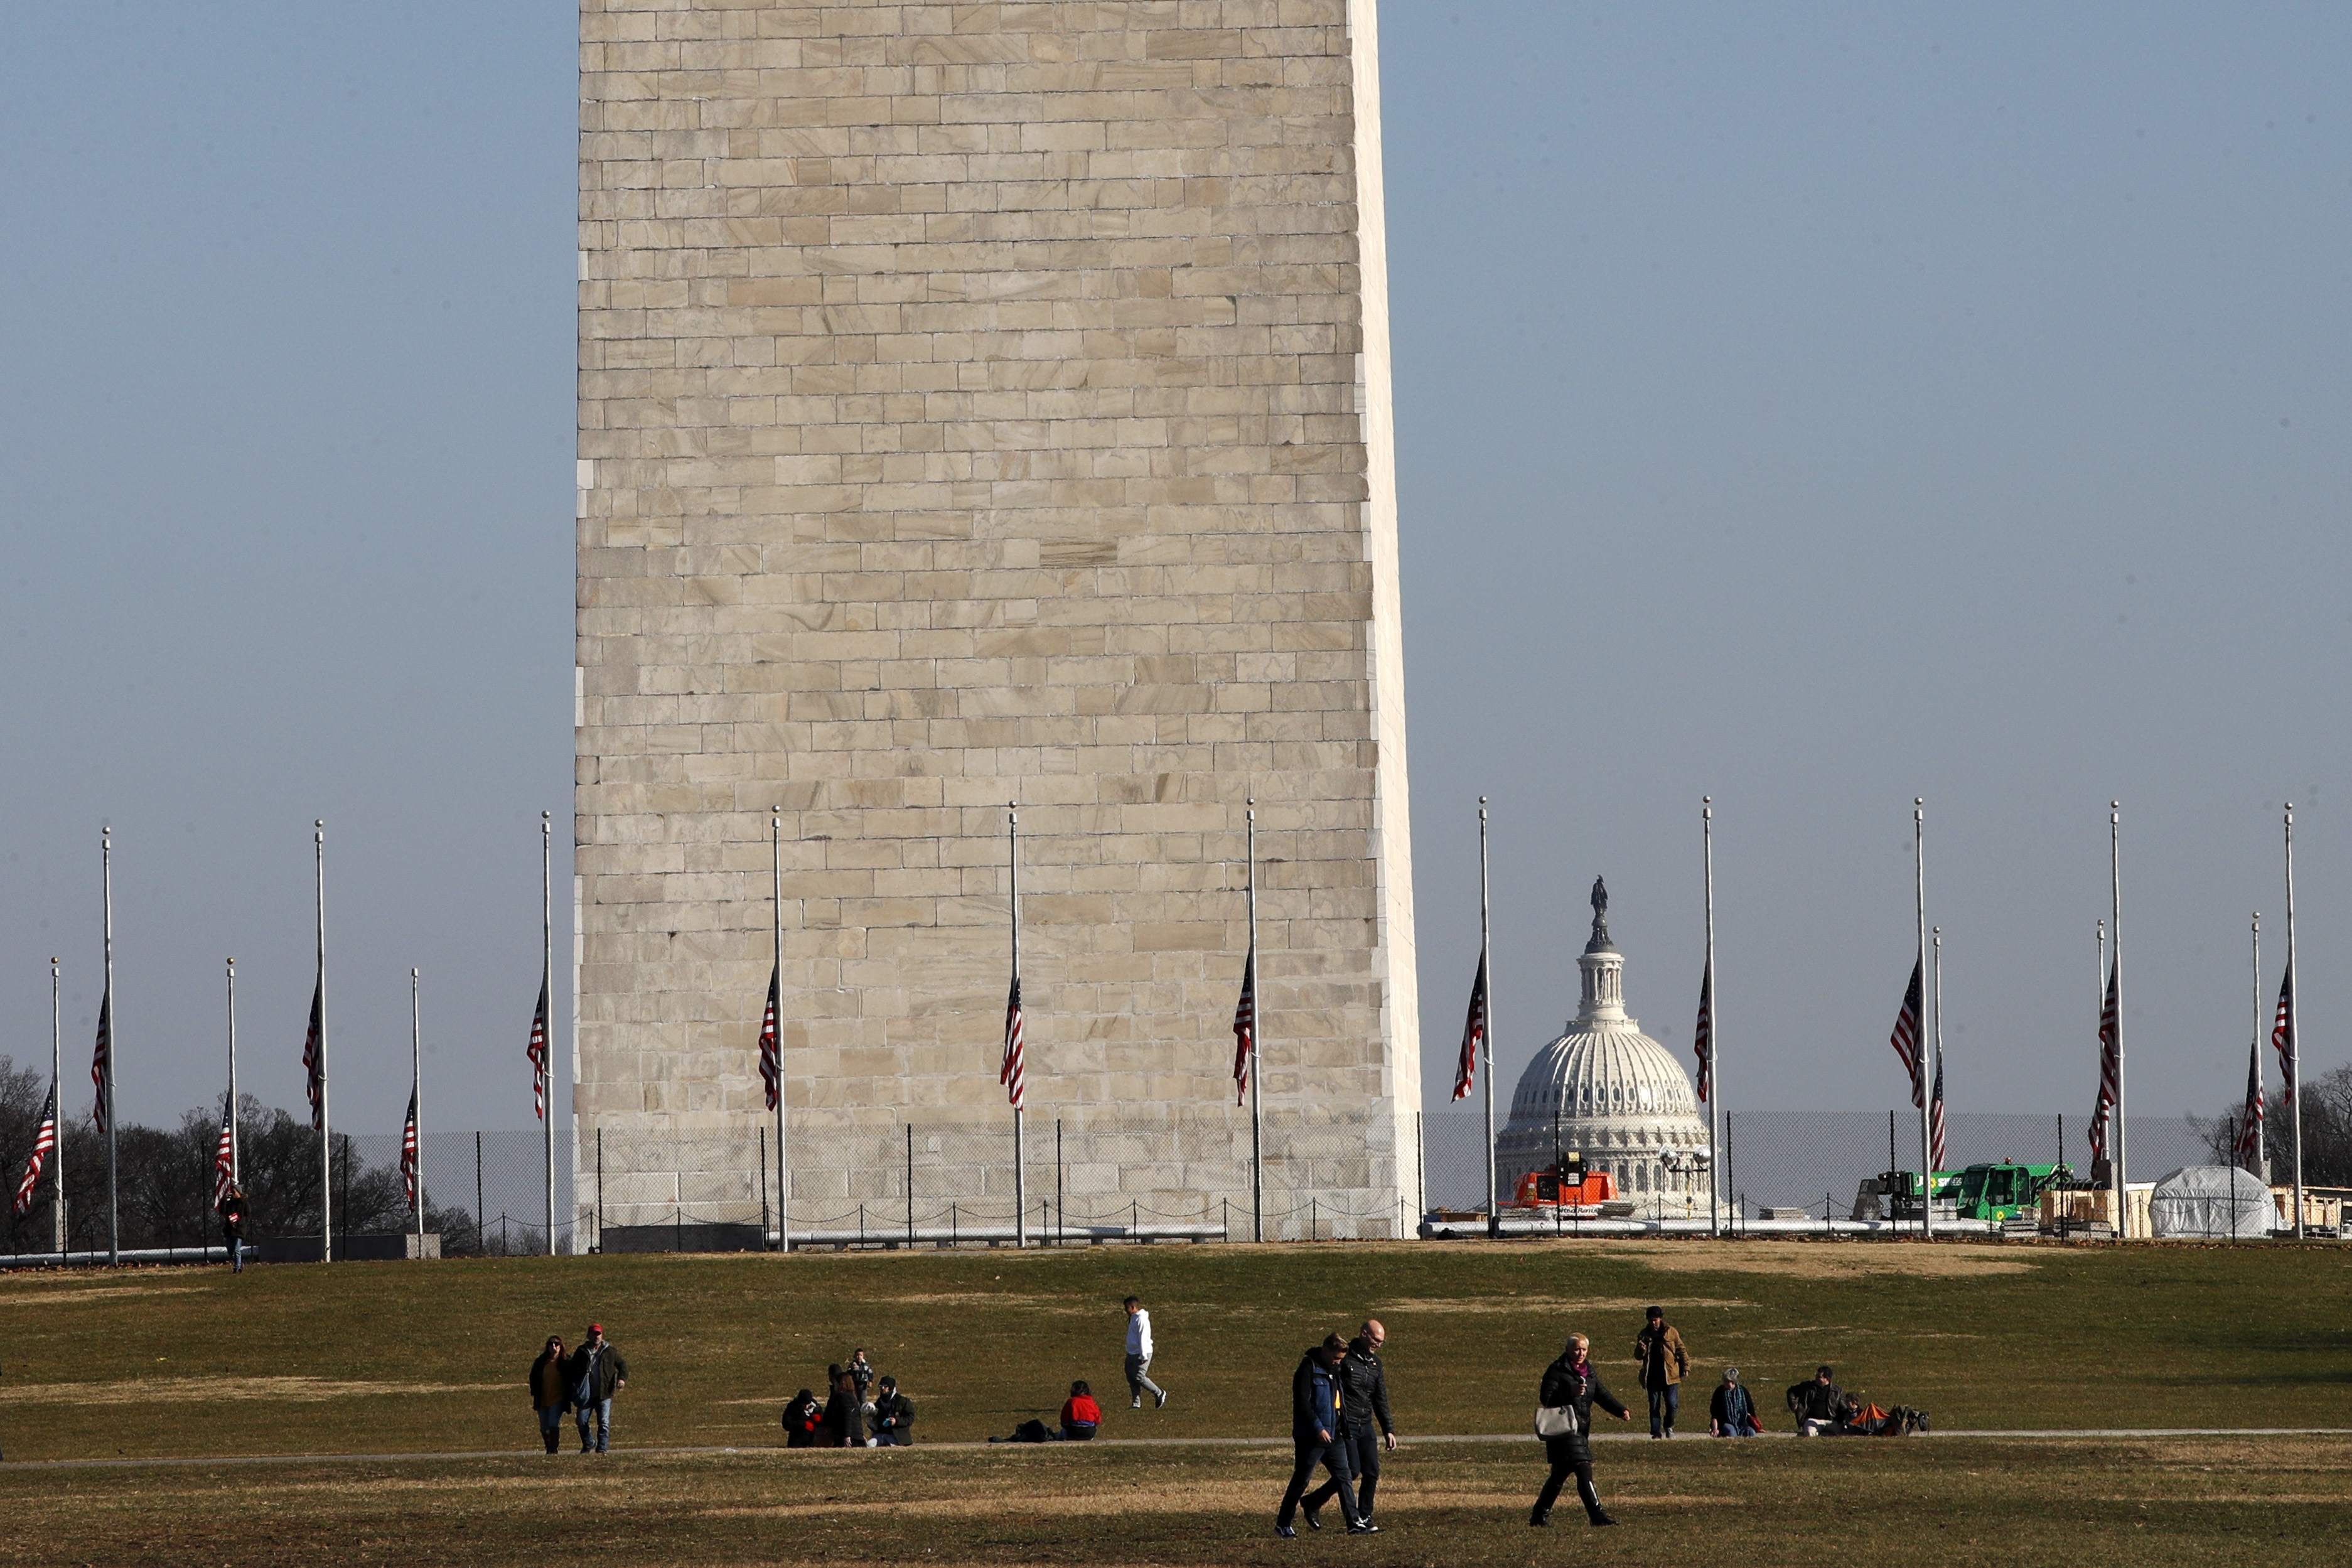 Washington Monument to reopen next month following 3-year closure: NPS